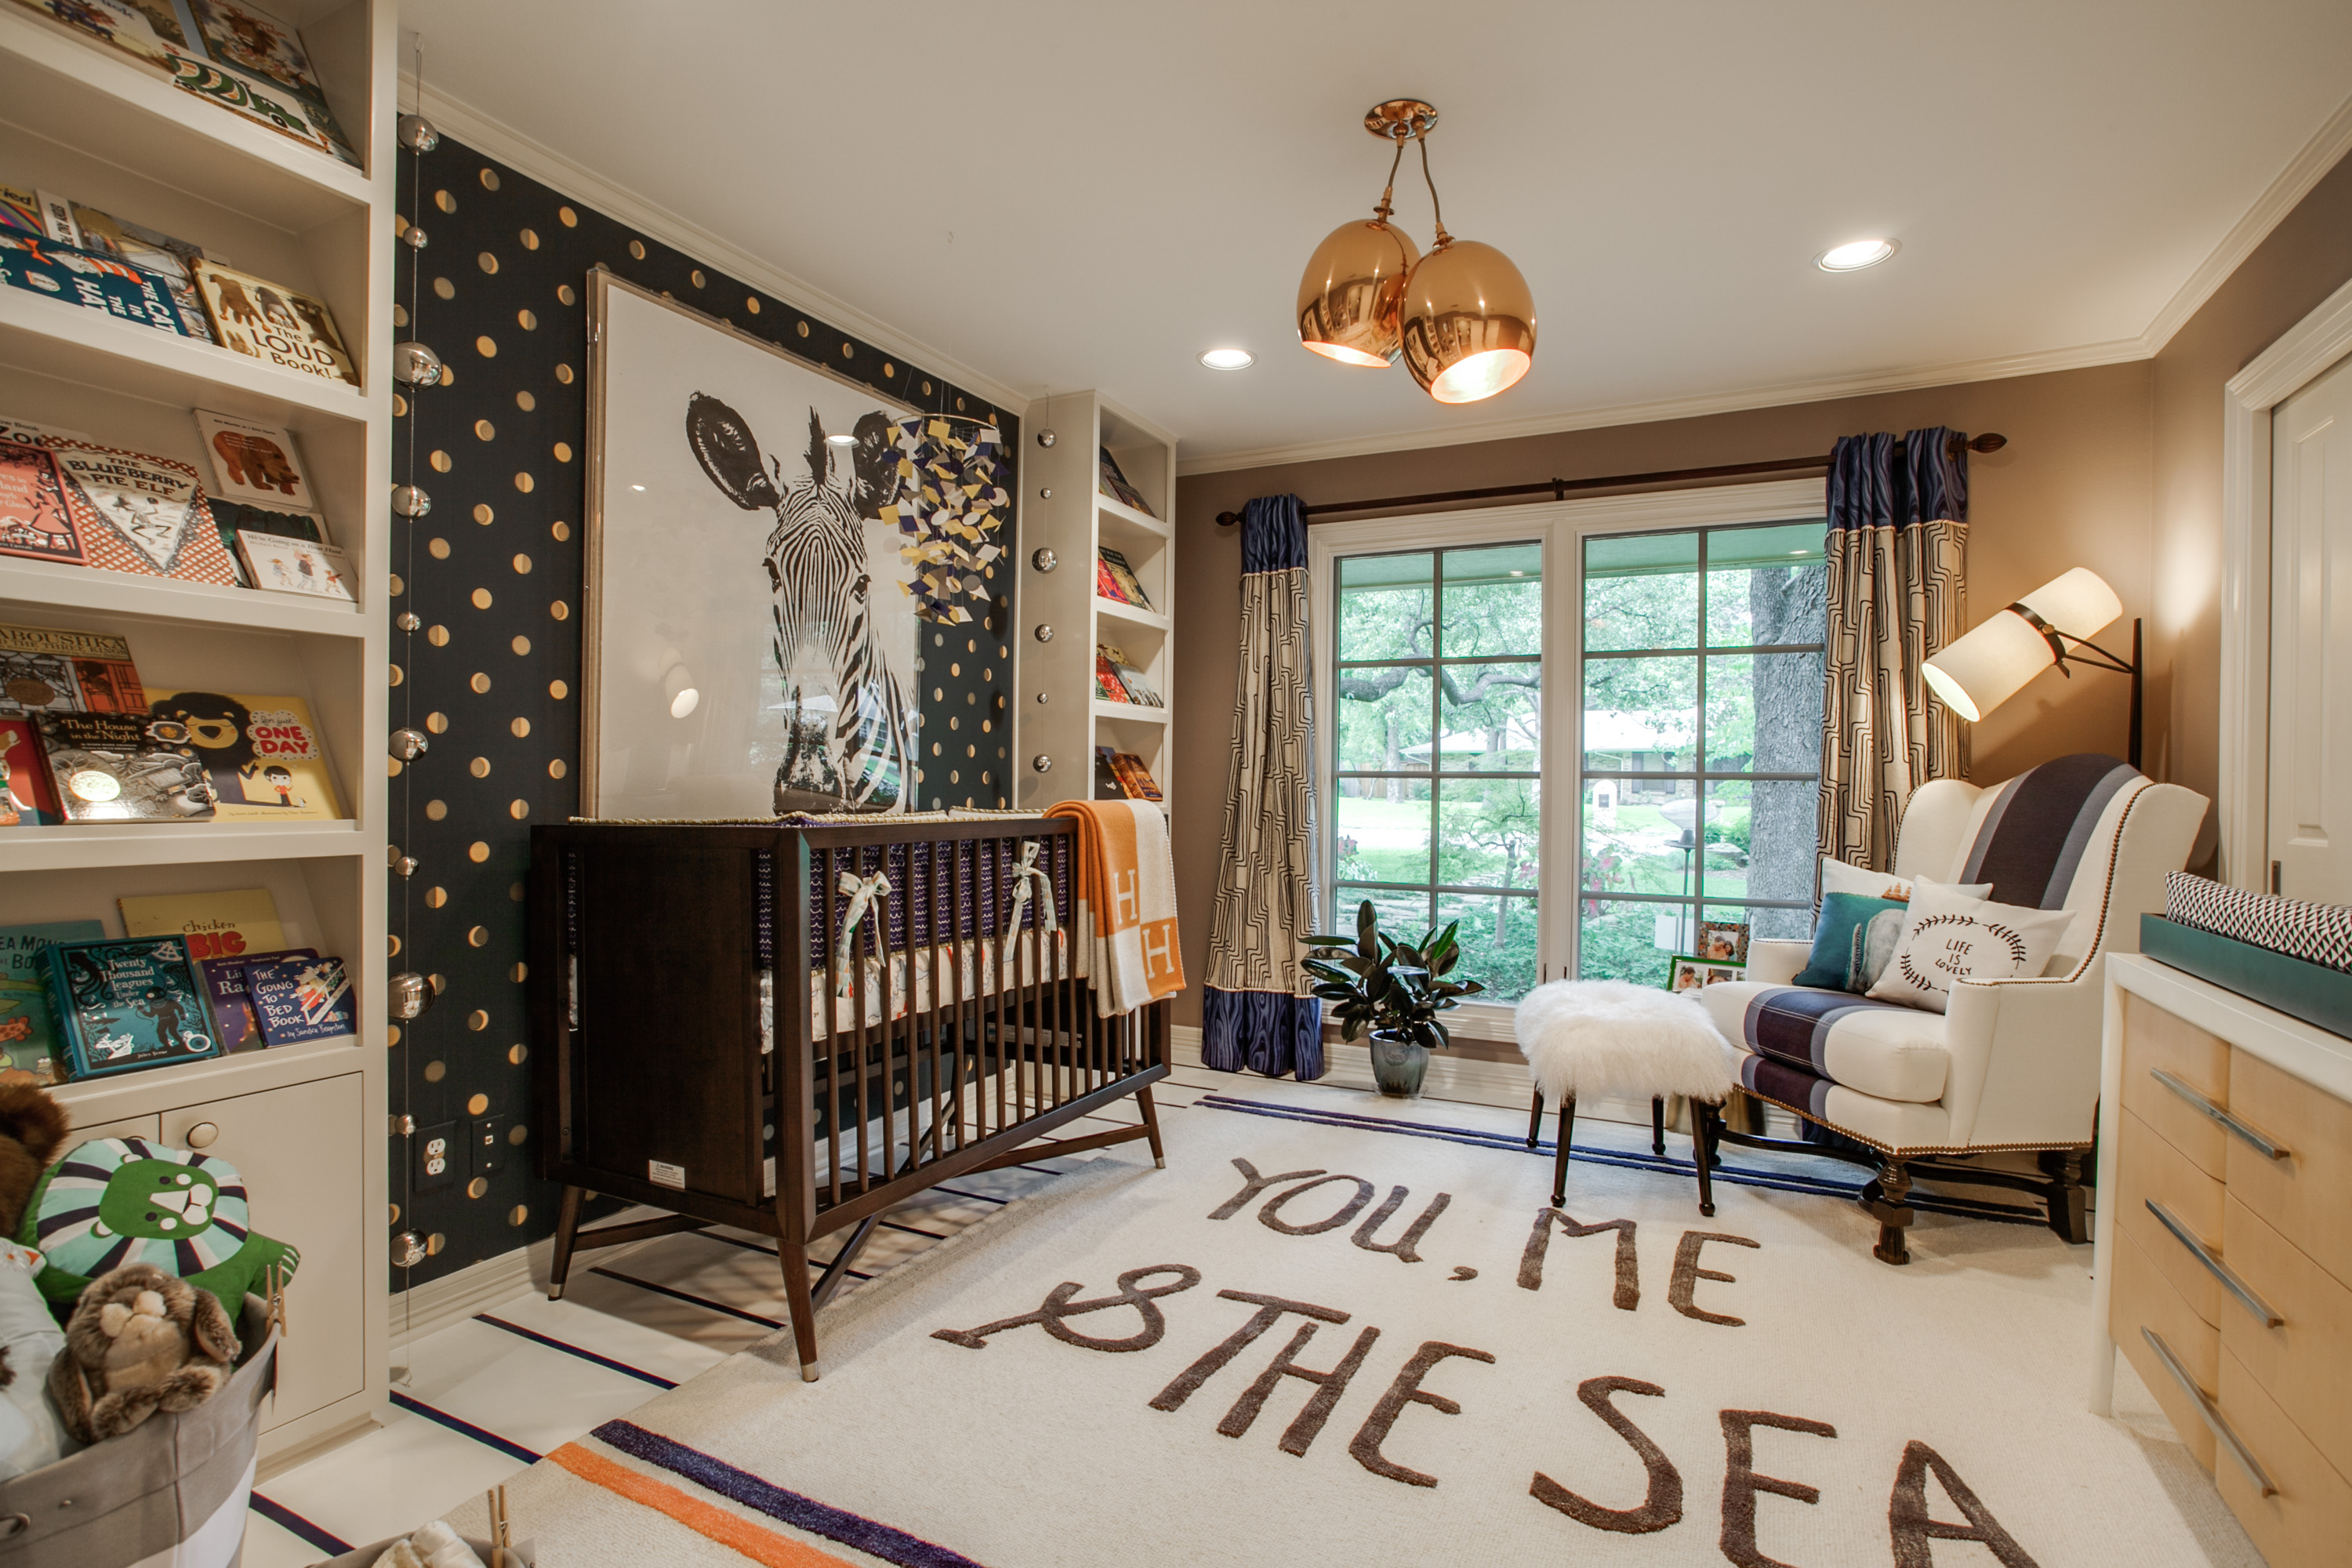 Turnstyle-Interior-Design-Texas-Nursery